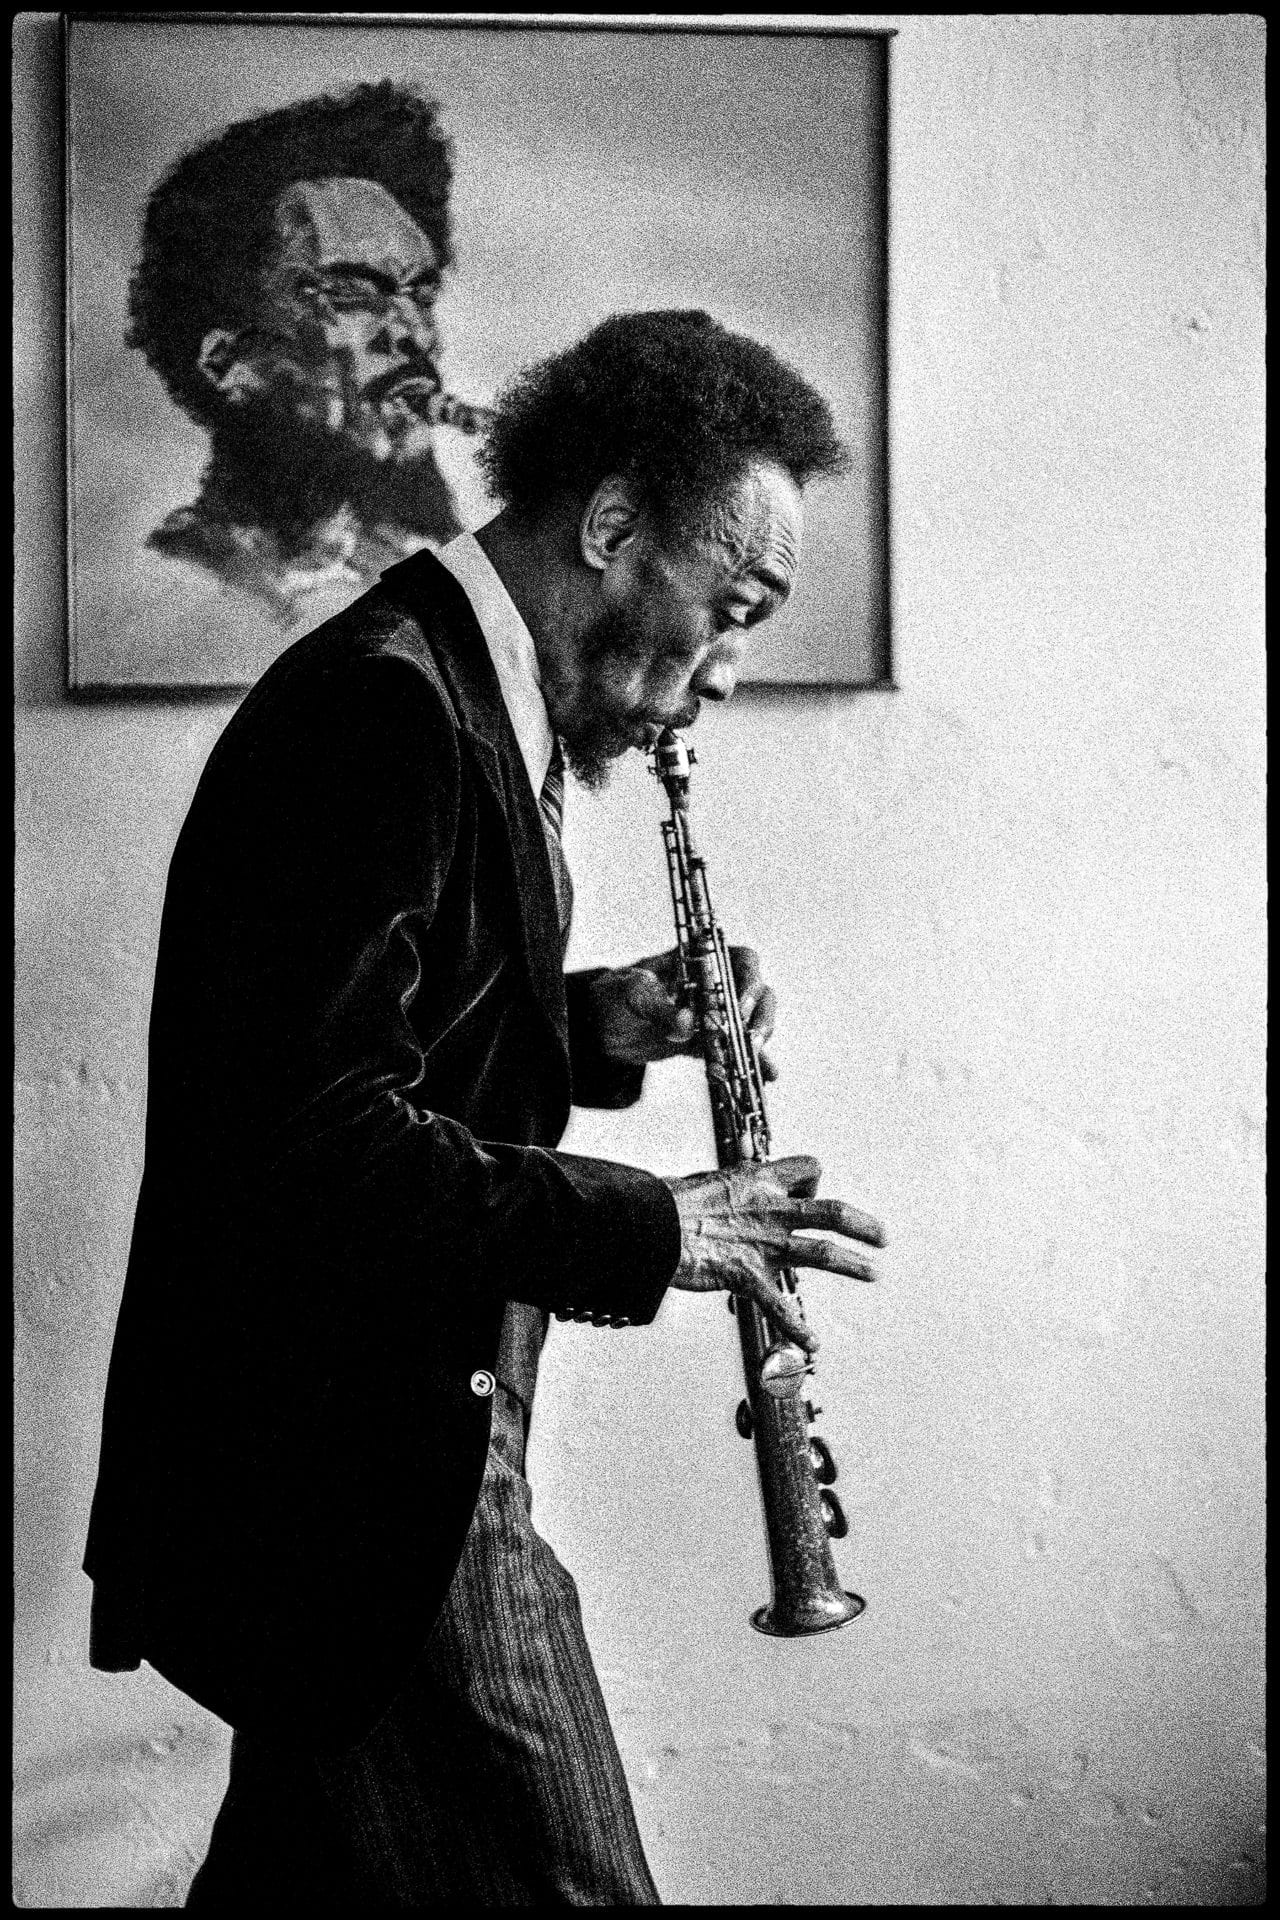 Sam Rivers 1980